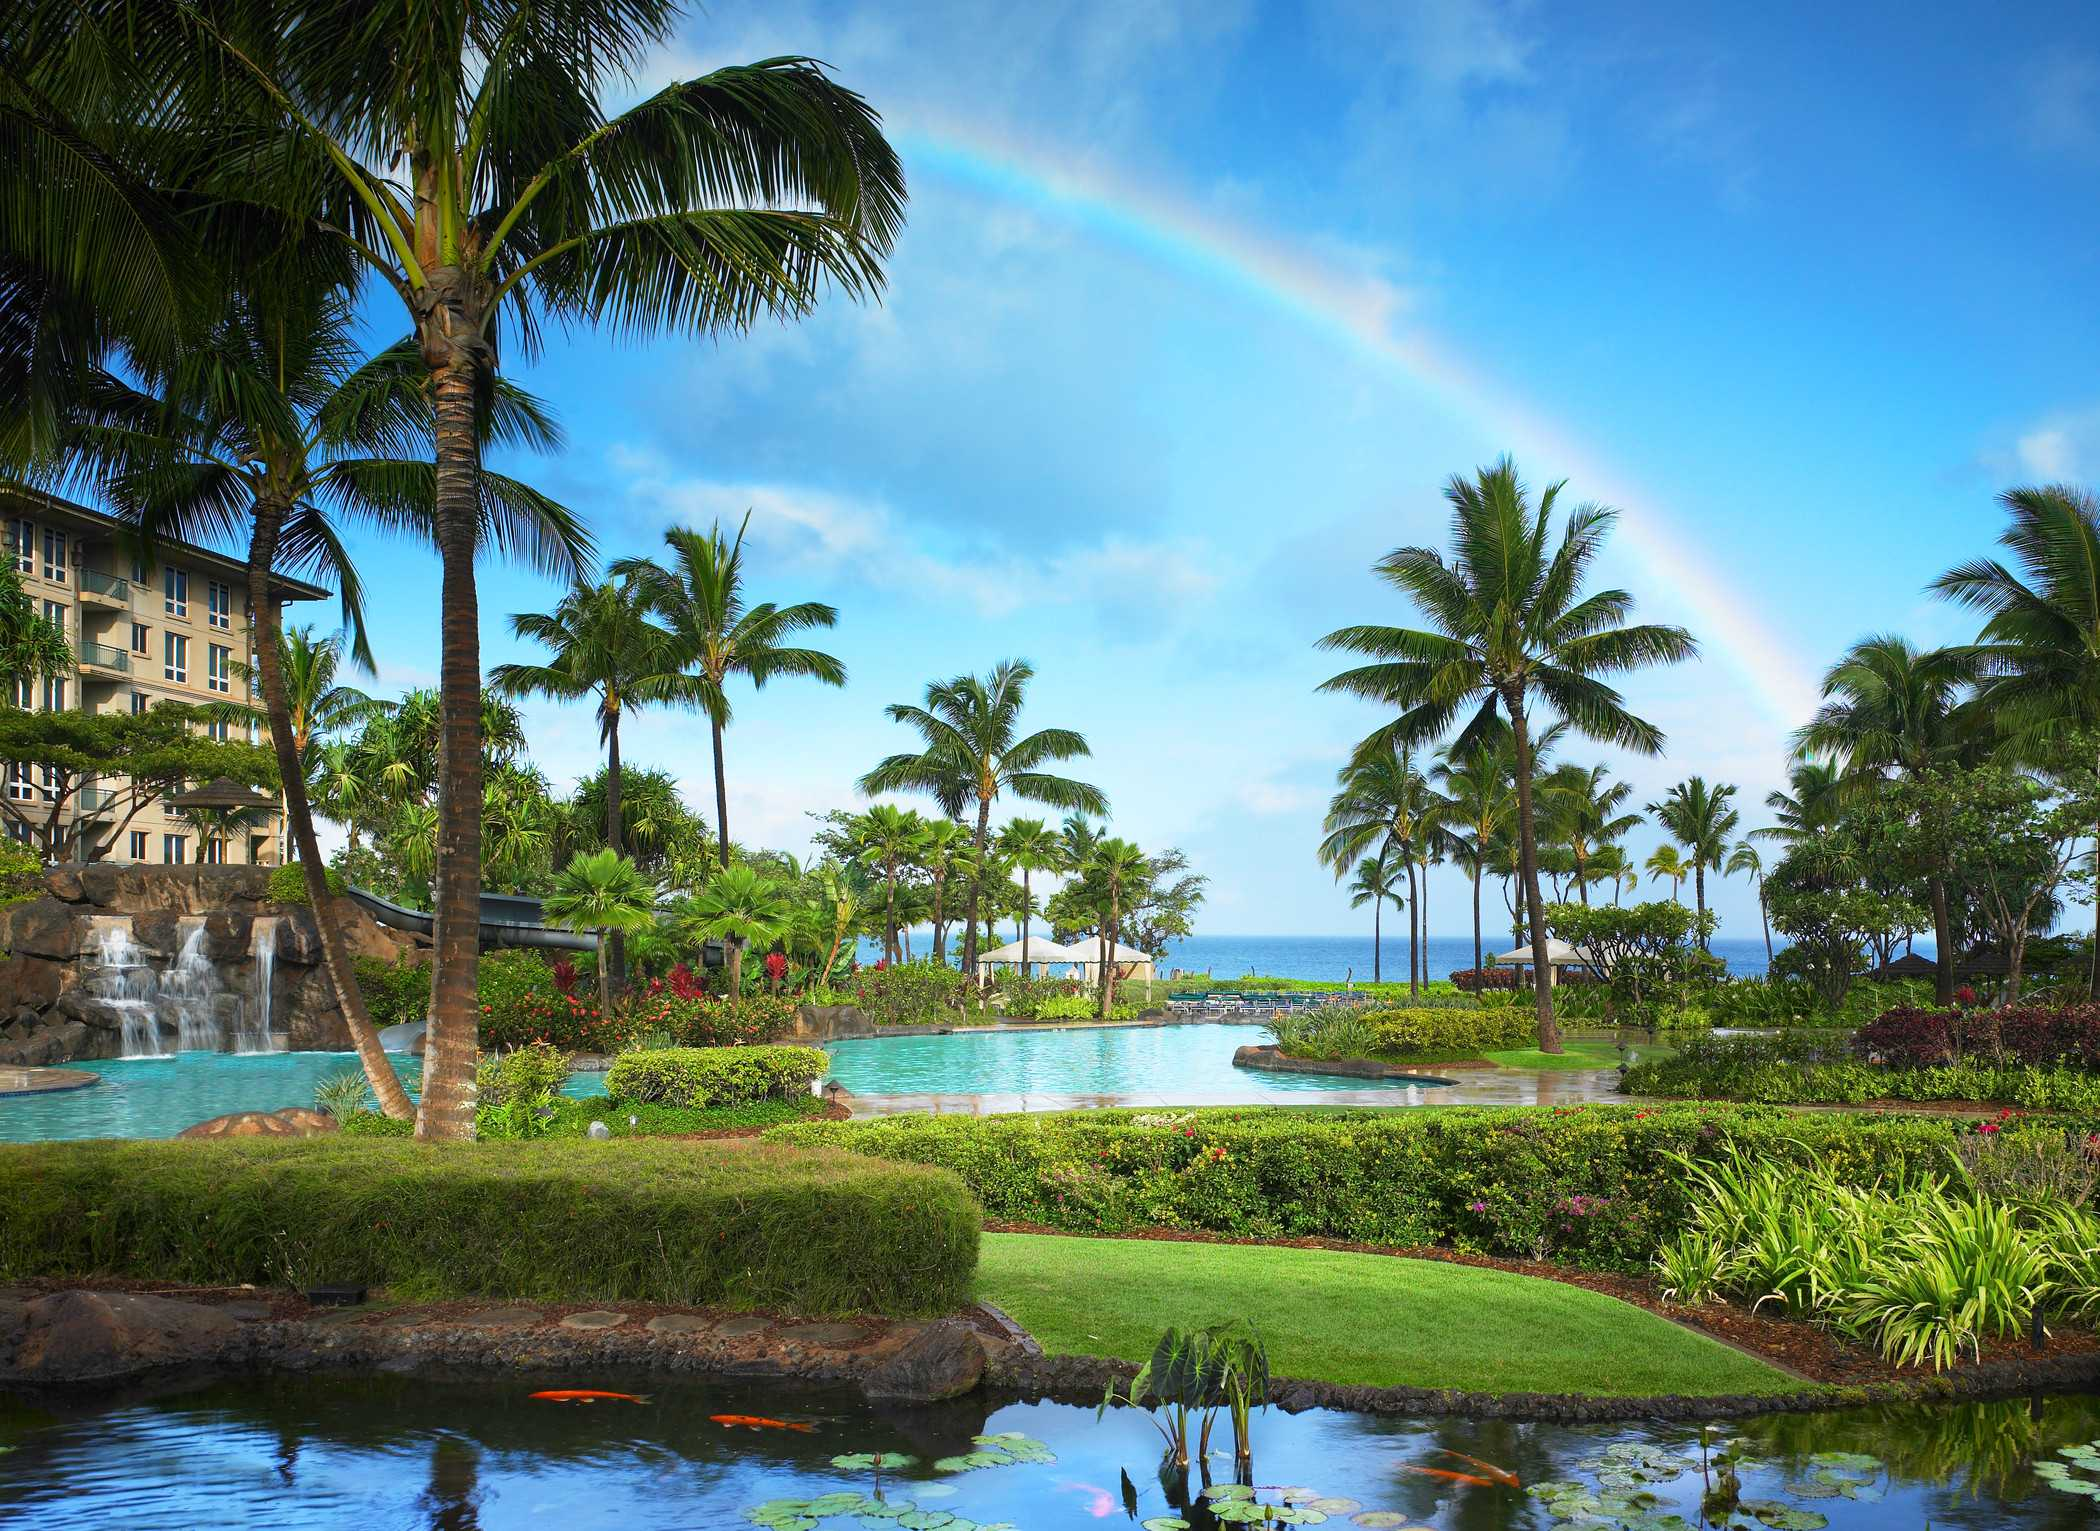 New Maui Timeshare and Maui Timeshare Resales Update